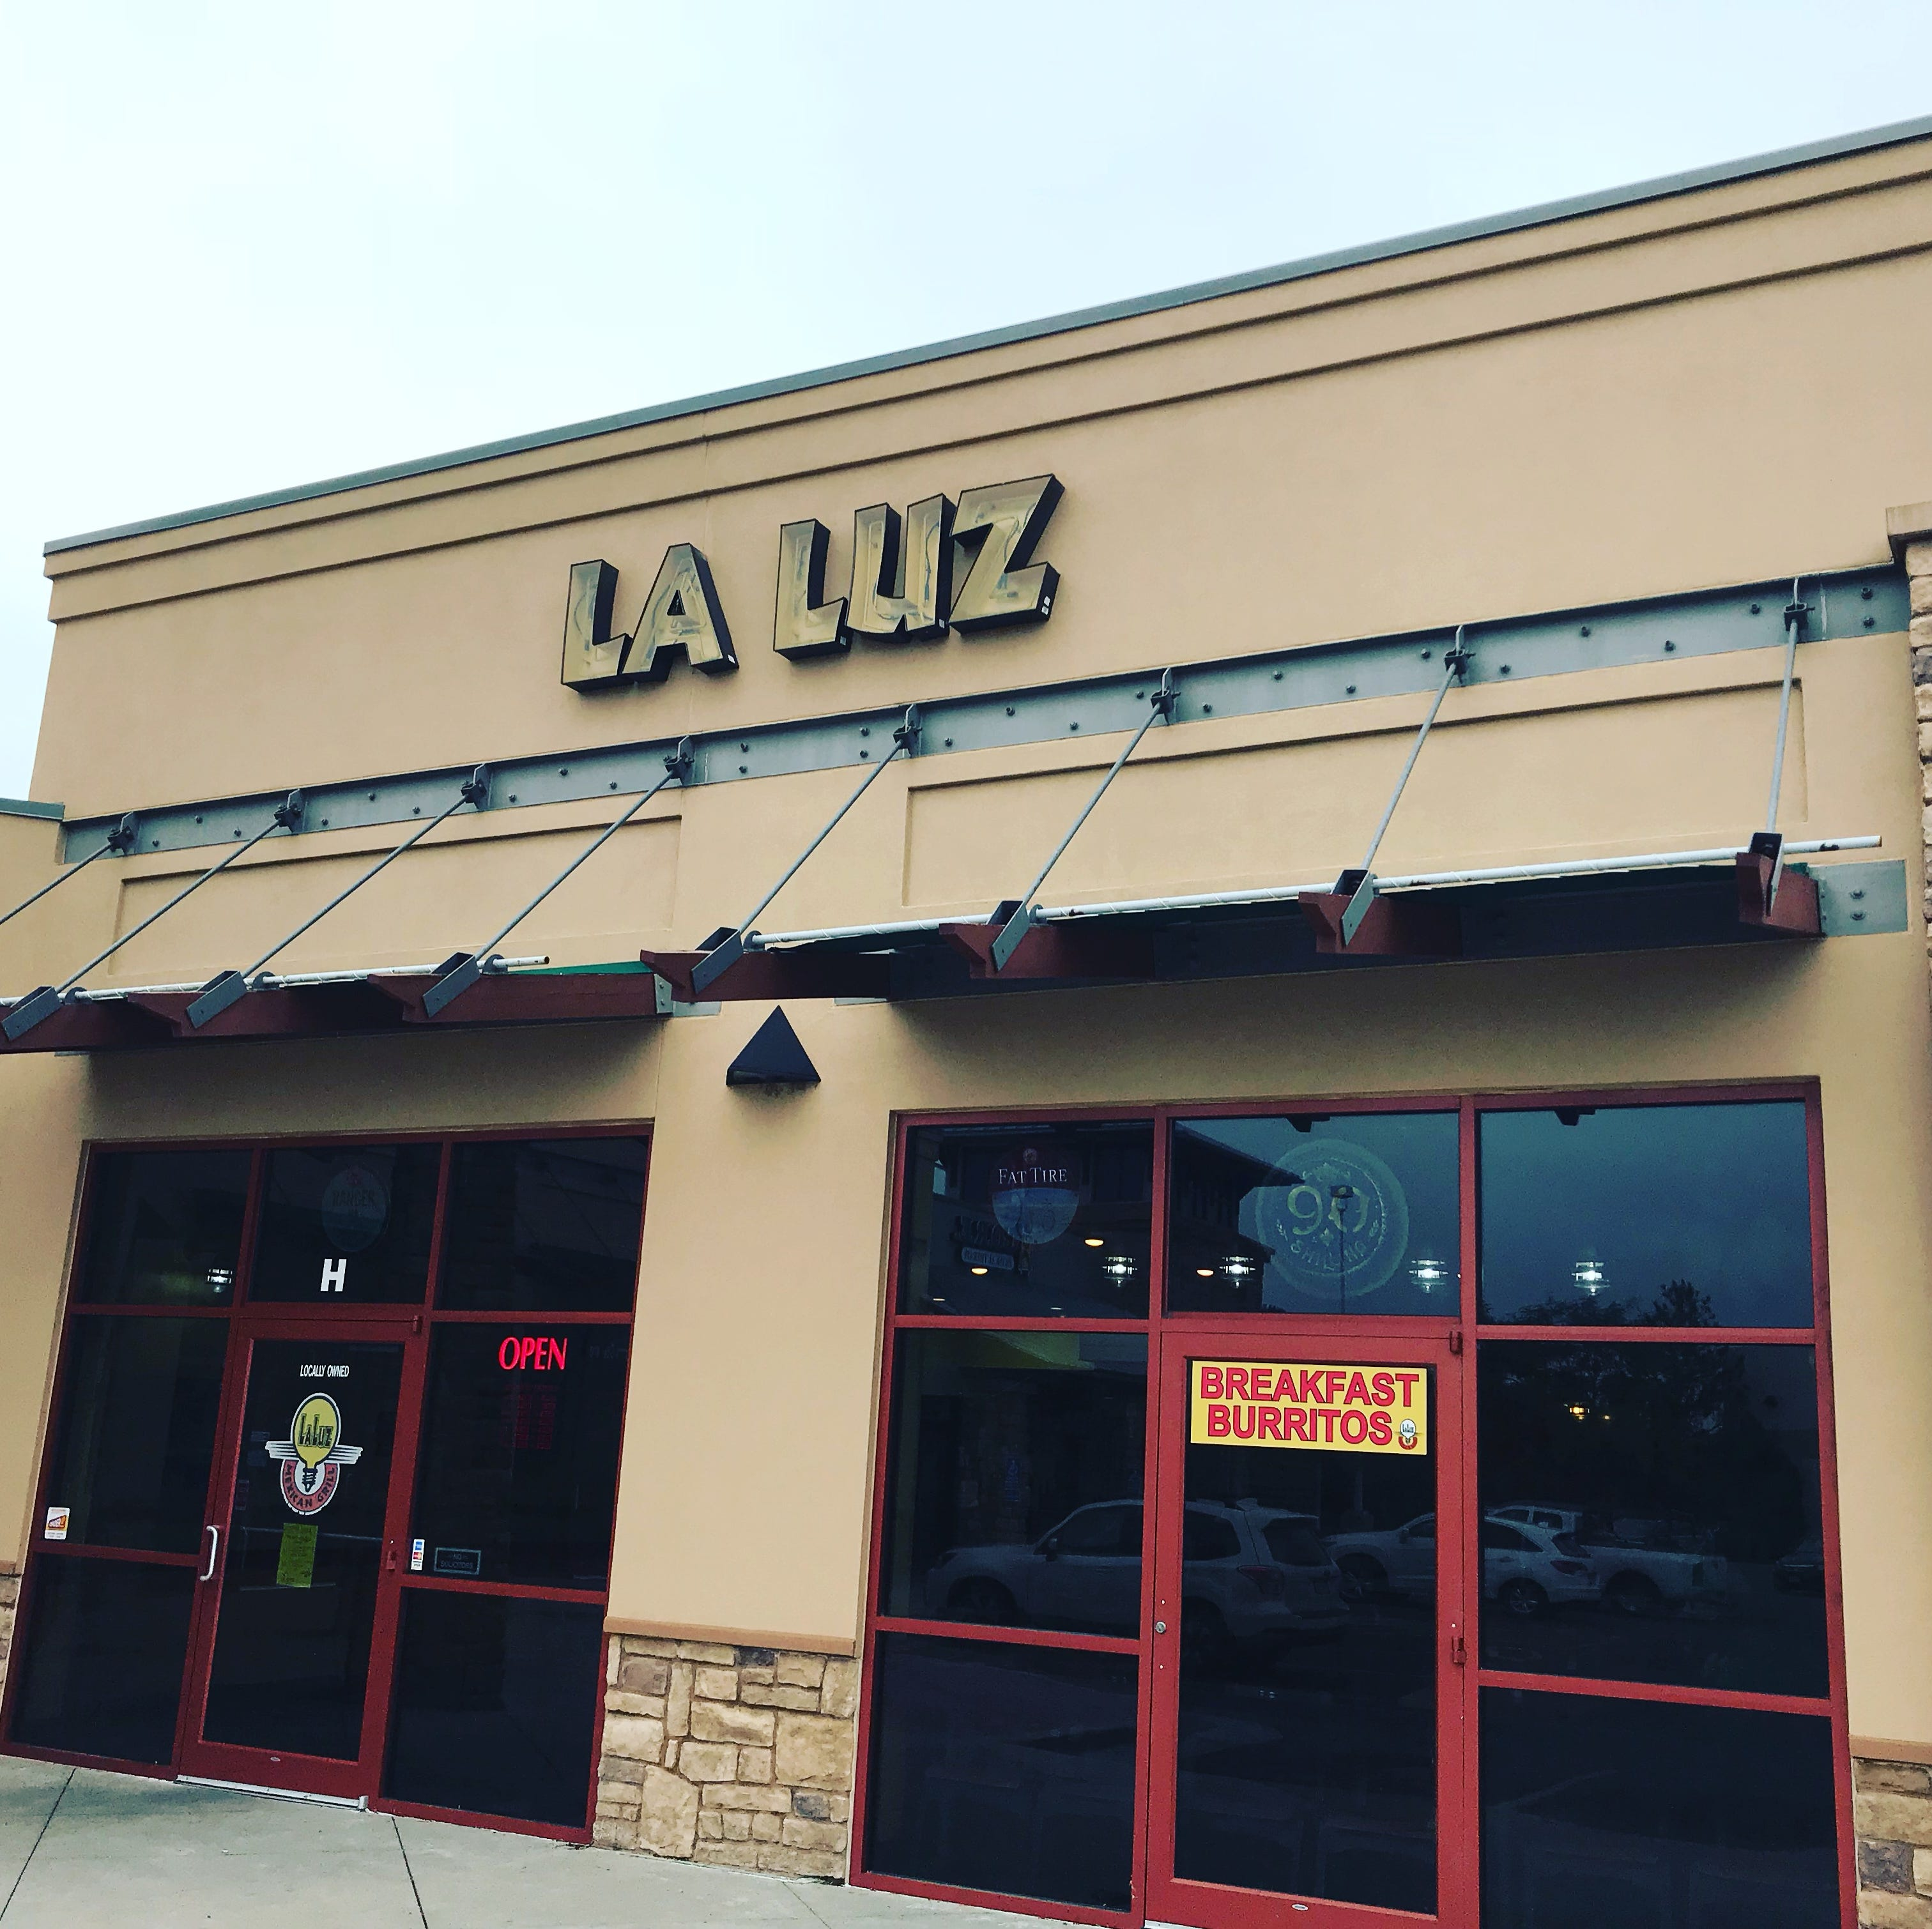 Other La Luz restaurants say outbreak at Old Town restaurant is hurting business